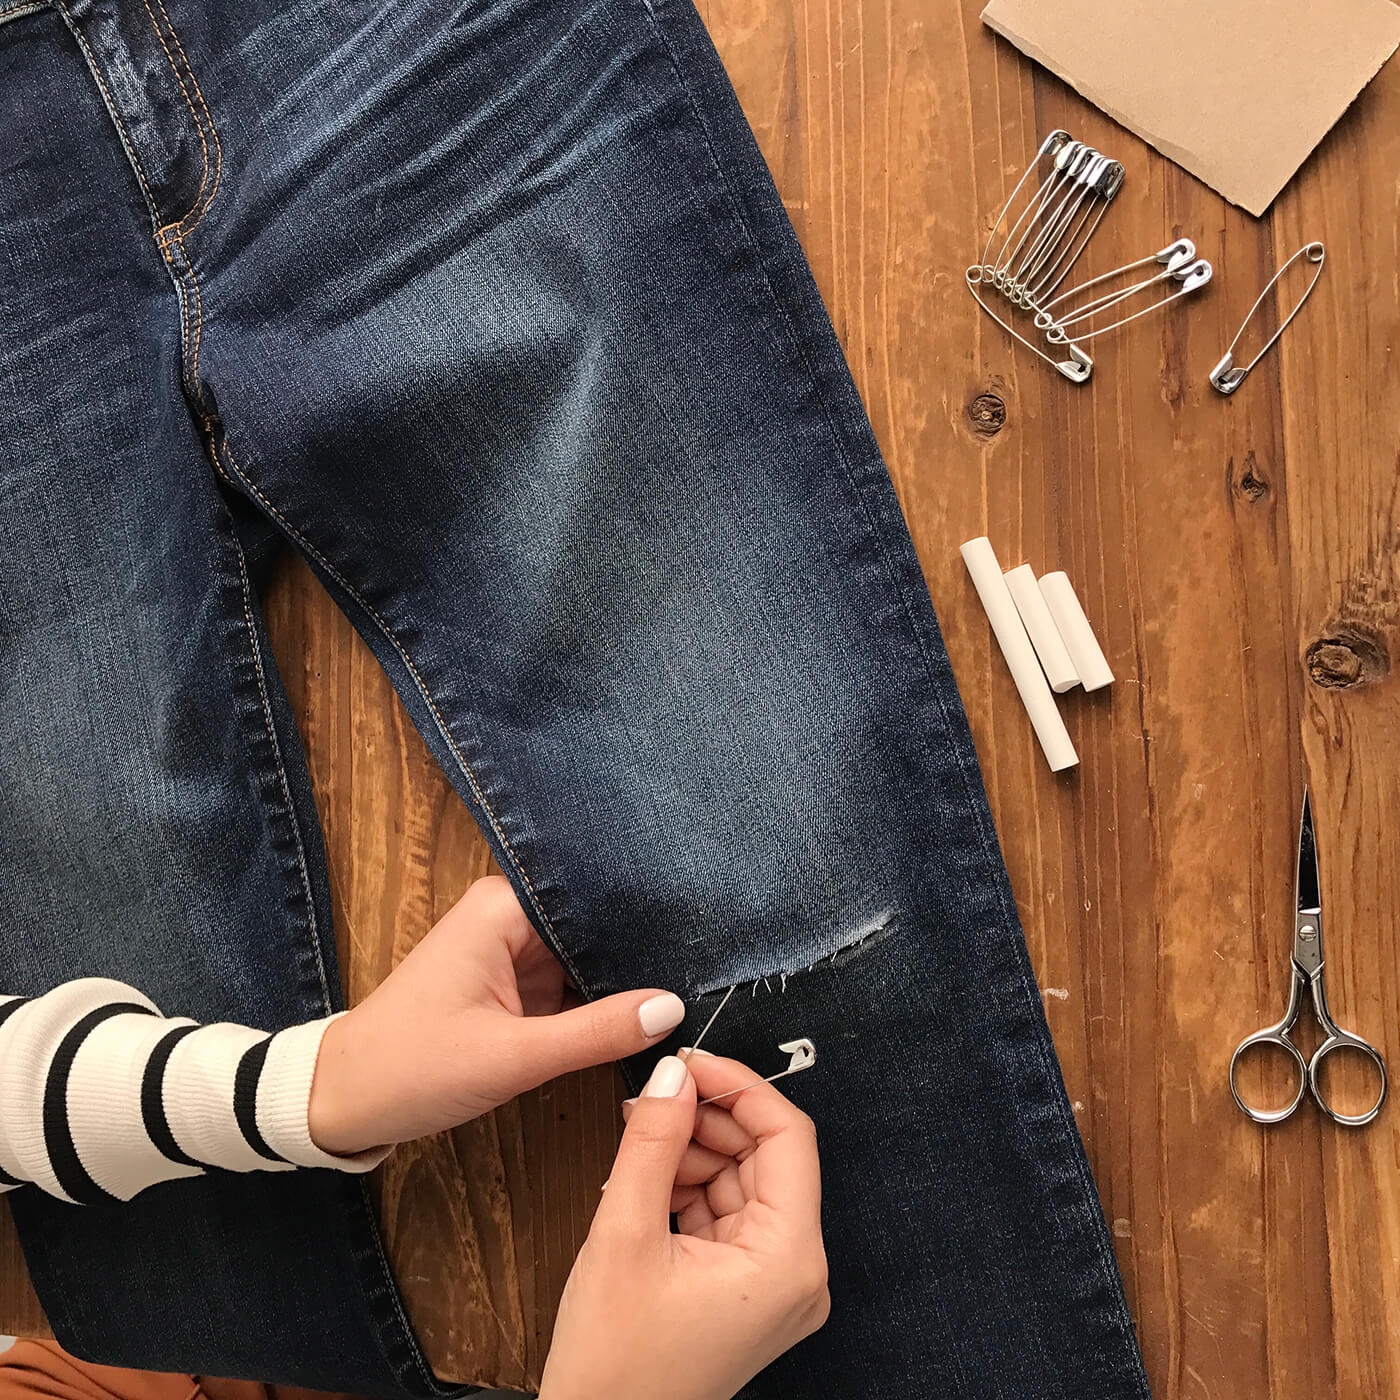 How to Distress Denim